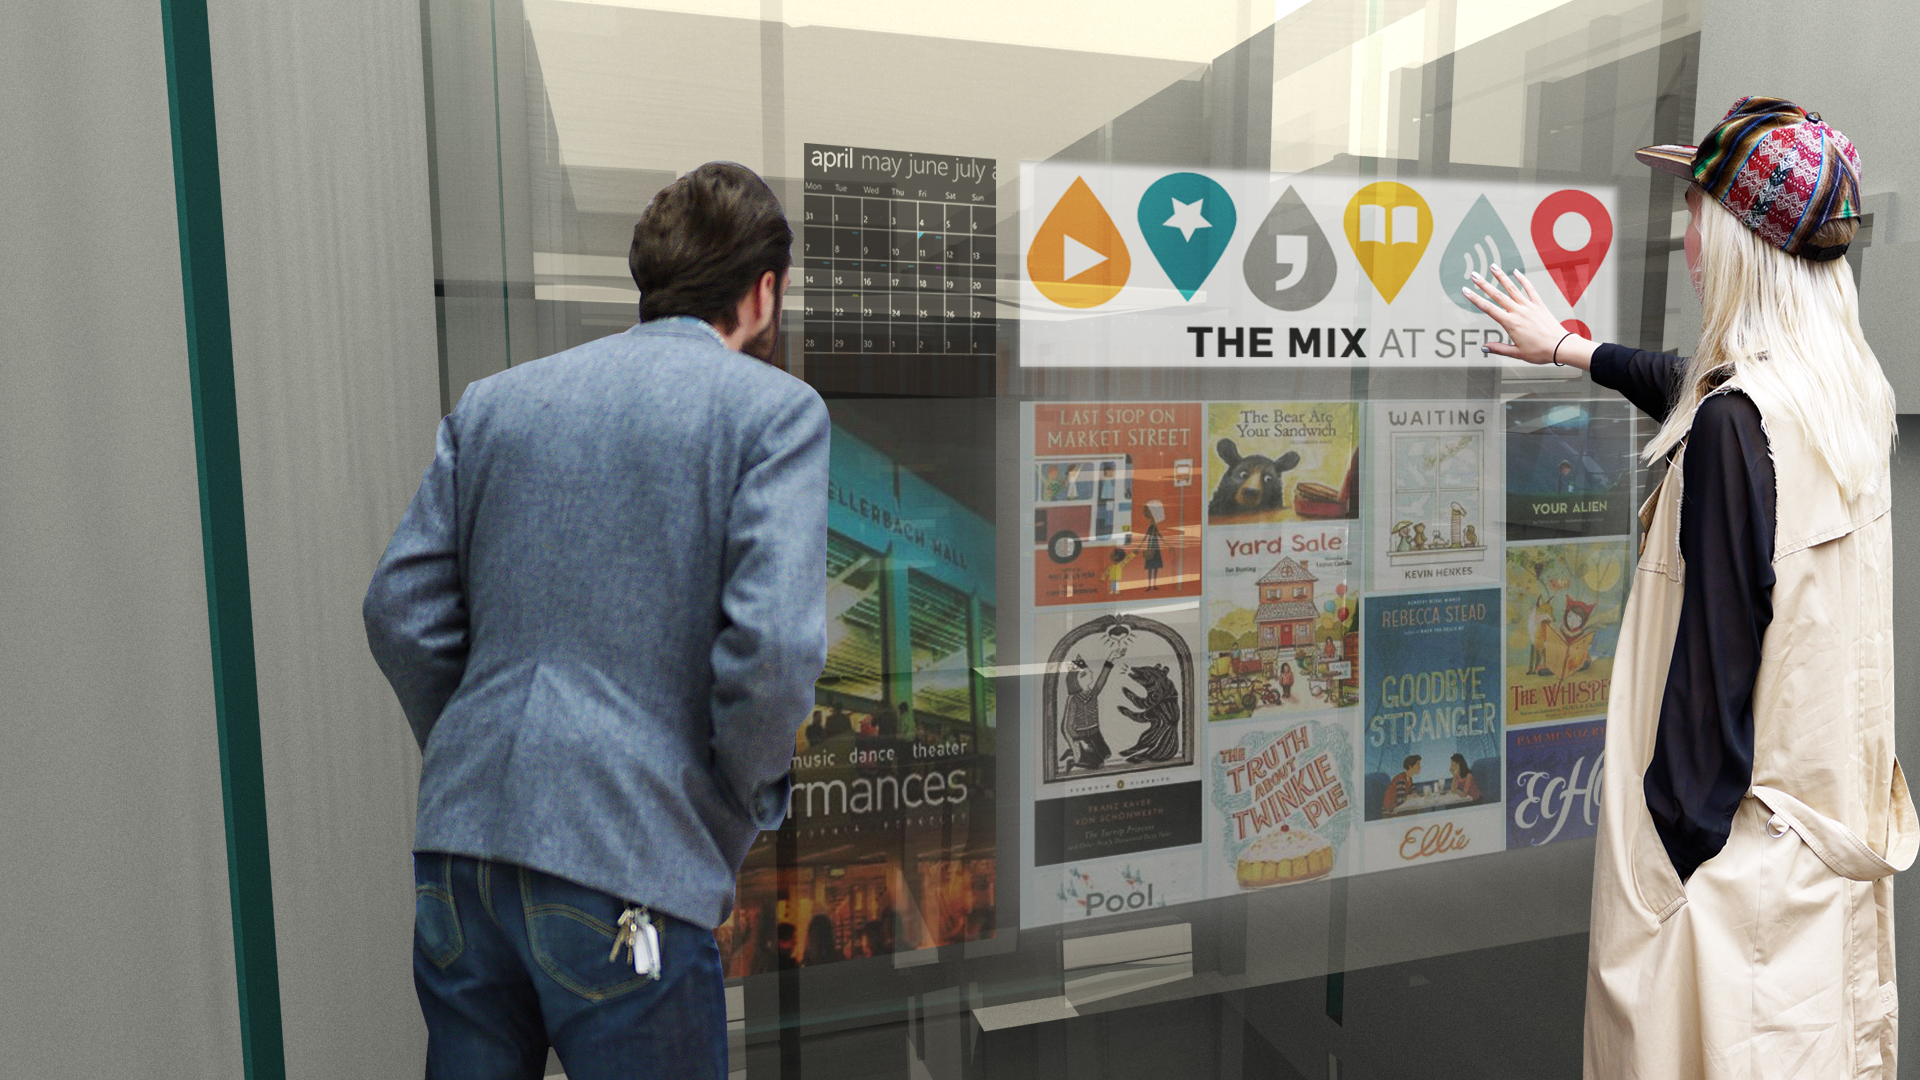 As you ride up the elevator to the Reading Room, other titles pop up that you can request. Current events in the library or more information about vendors appears too.